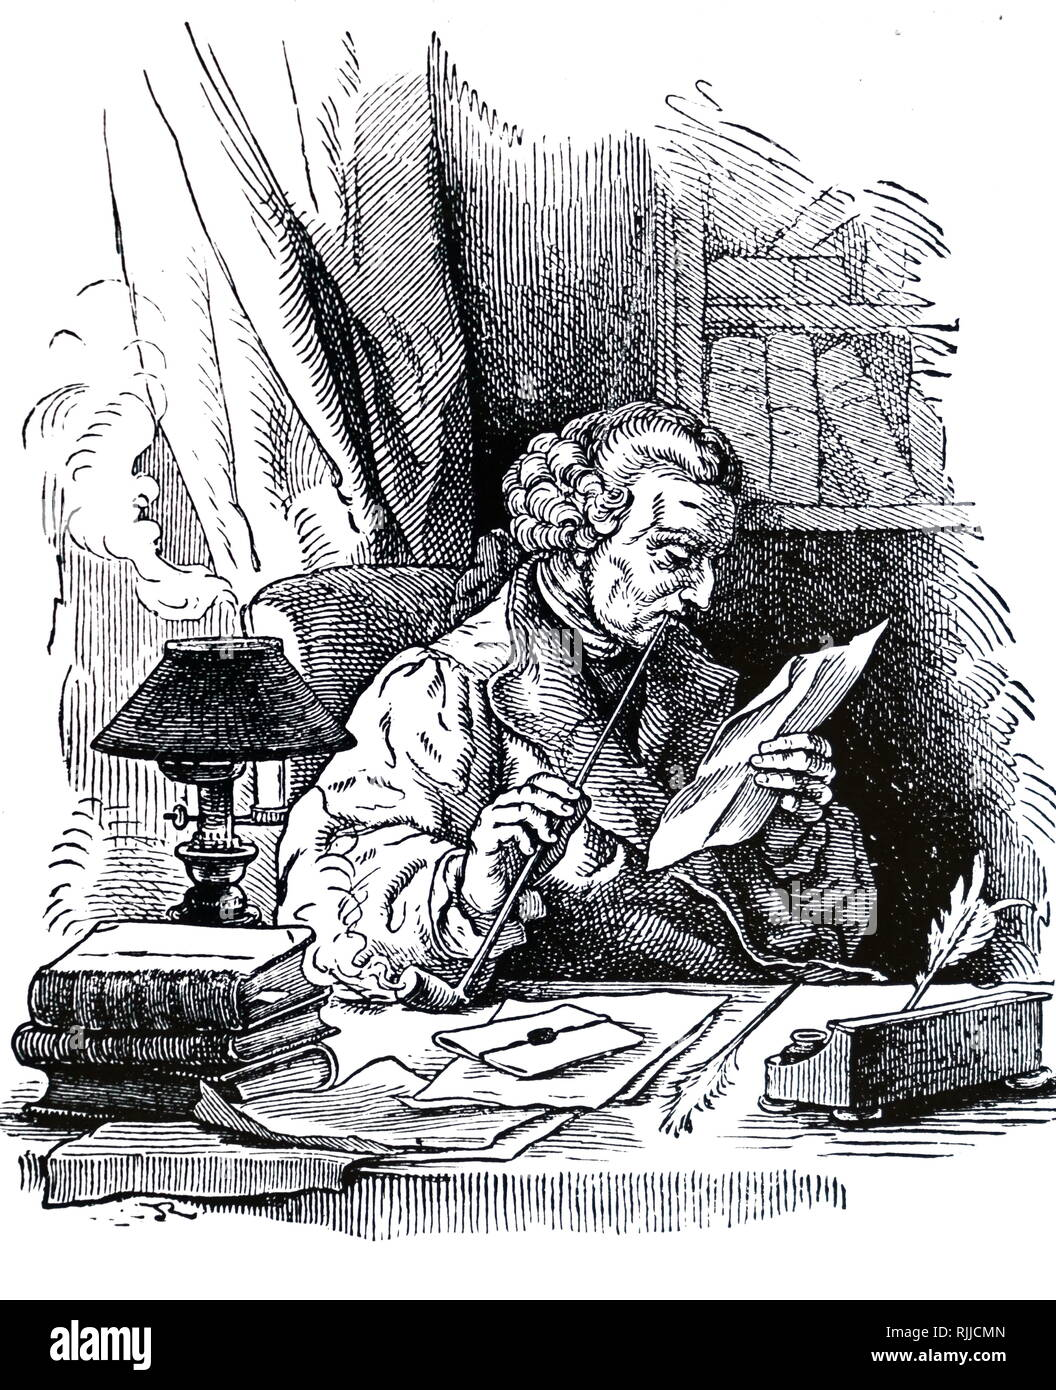 An engraving depicting a man enjoying a churchwarden pipe while reading a letter in the light of an oil lamp. Dated 19th century - Stock Image